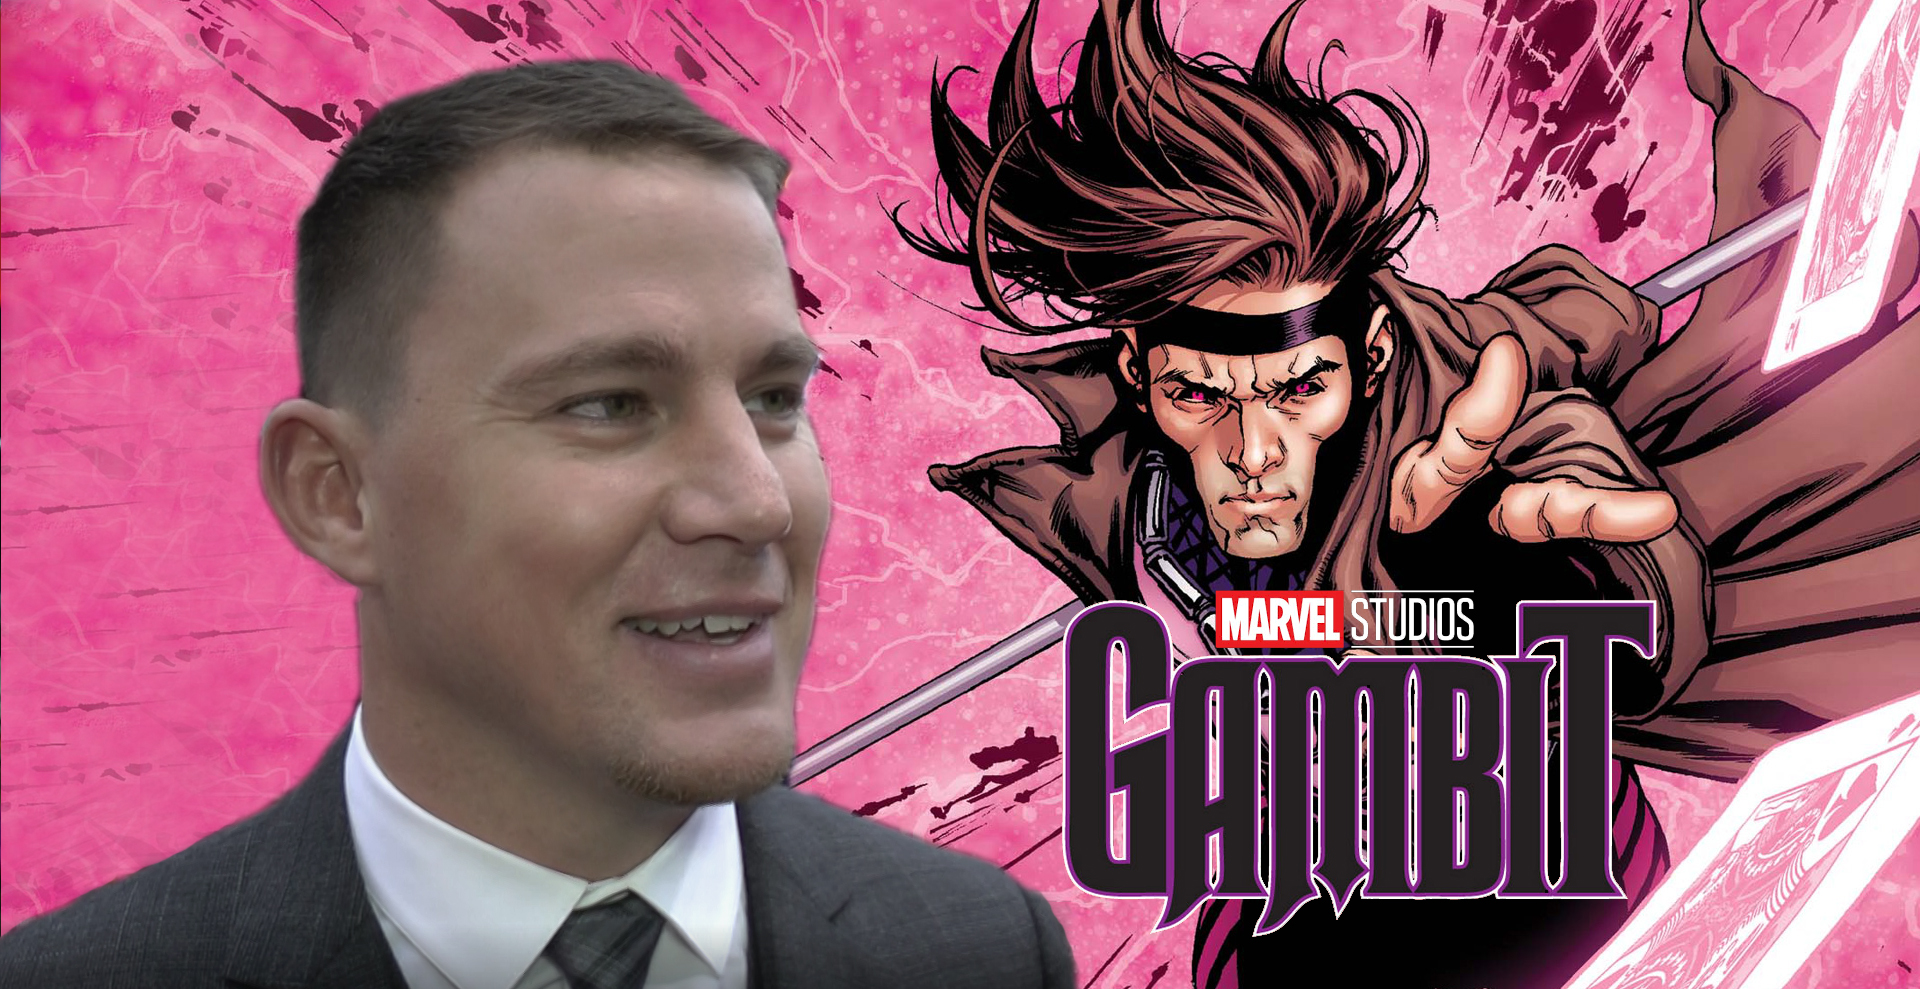 Fox's Gambit Spinoff Is Starting Over, Channing Tatum Reiterates